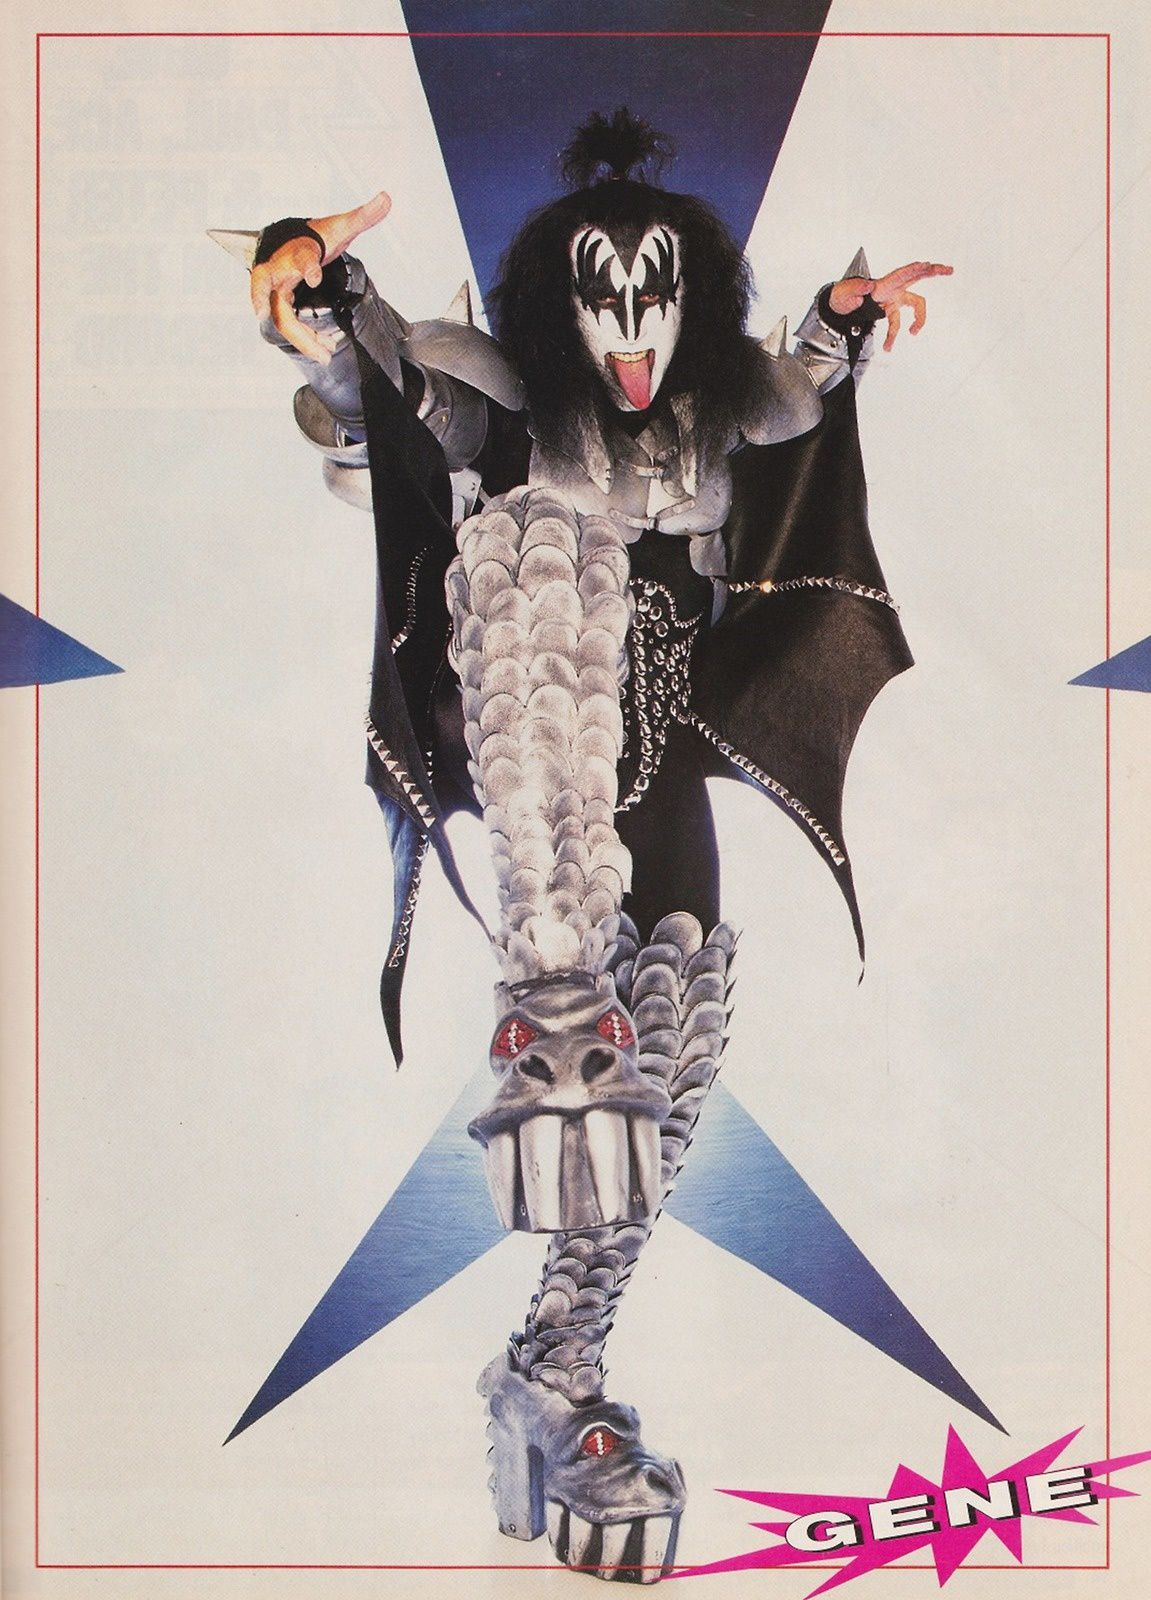 Gene Simmons - 1998 - KISS - Psycho Circus Photo Shoot